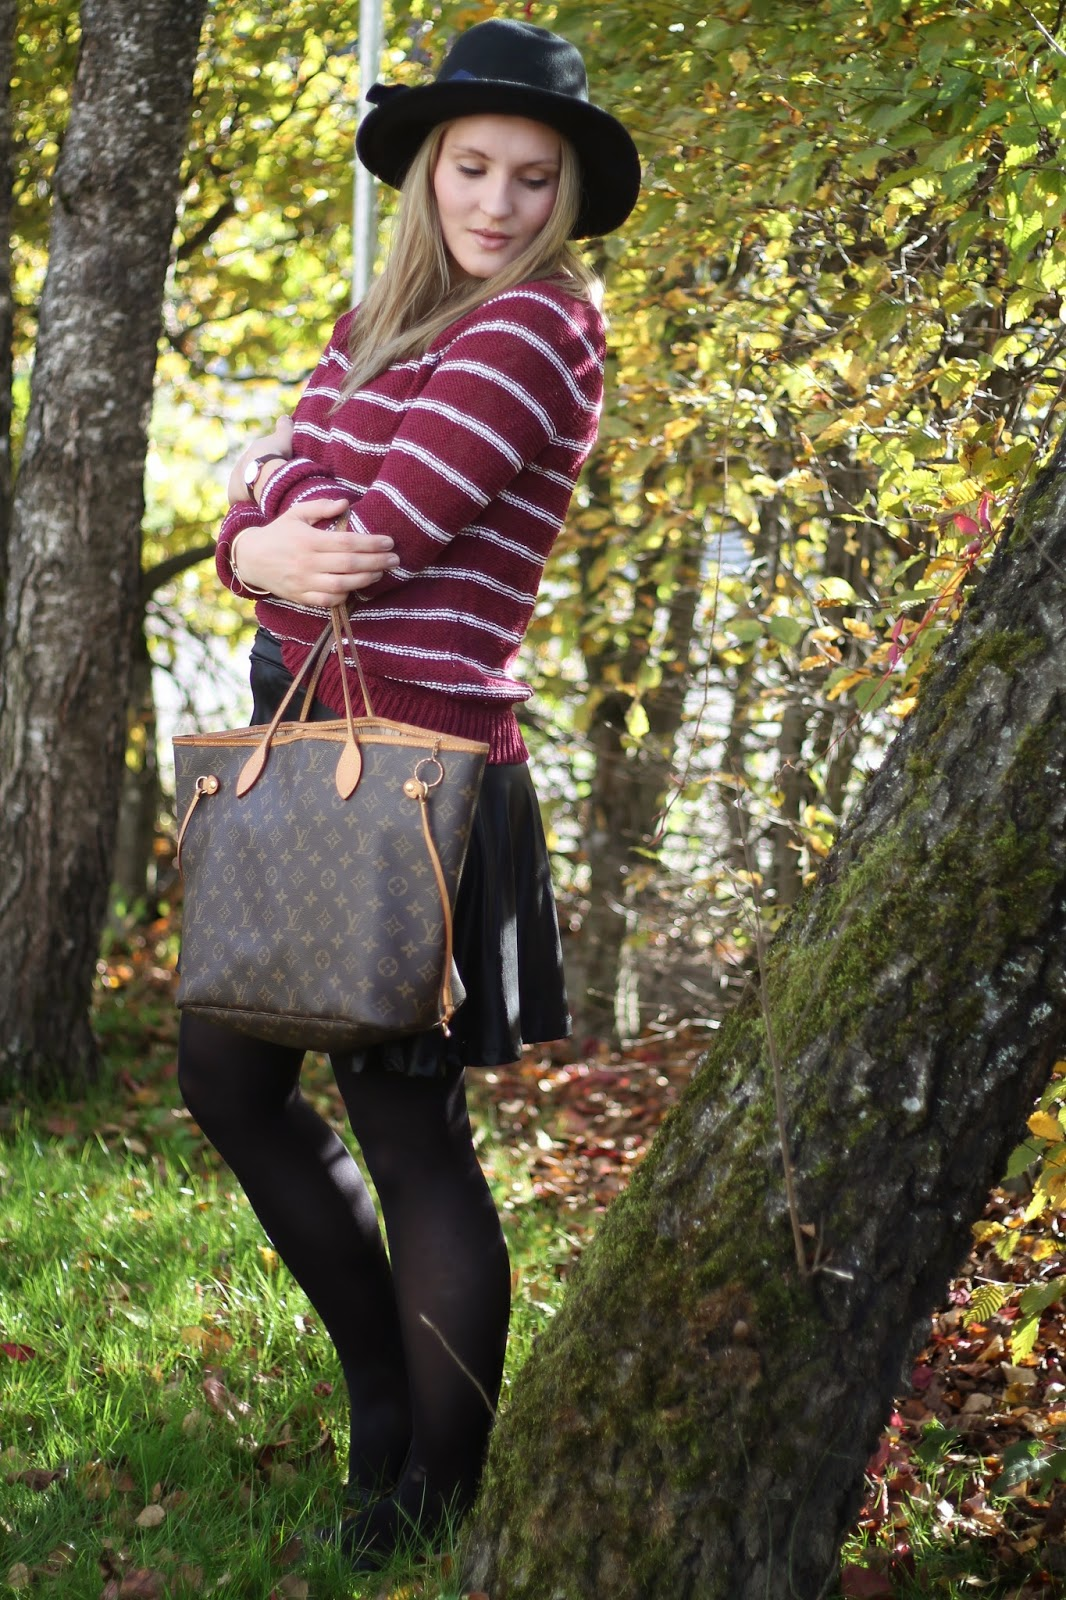 Fashionblogger Austria / Österreich / Deutsch / German / Kärnten / Carinthia / Klagenfurt / Köttmannsdorf / Spring Look / Classy / Edgy / Autumn / Autumn Style 2014 / Autumn Look / Fashionista Look / Striped Red White Sweater Forever 21 / Black Leather Skirt C&A / Louis Vuitton Neverfull Monogramm Canvas / Black Hat Forever 21 / Black Flats Burebrry / Daniel Wellington Watch / Gold Bow Bracelet /